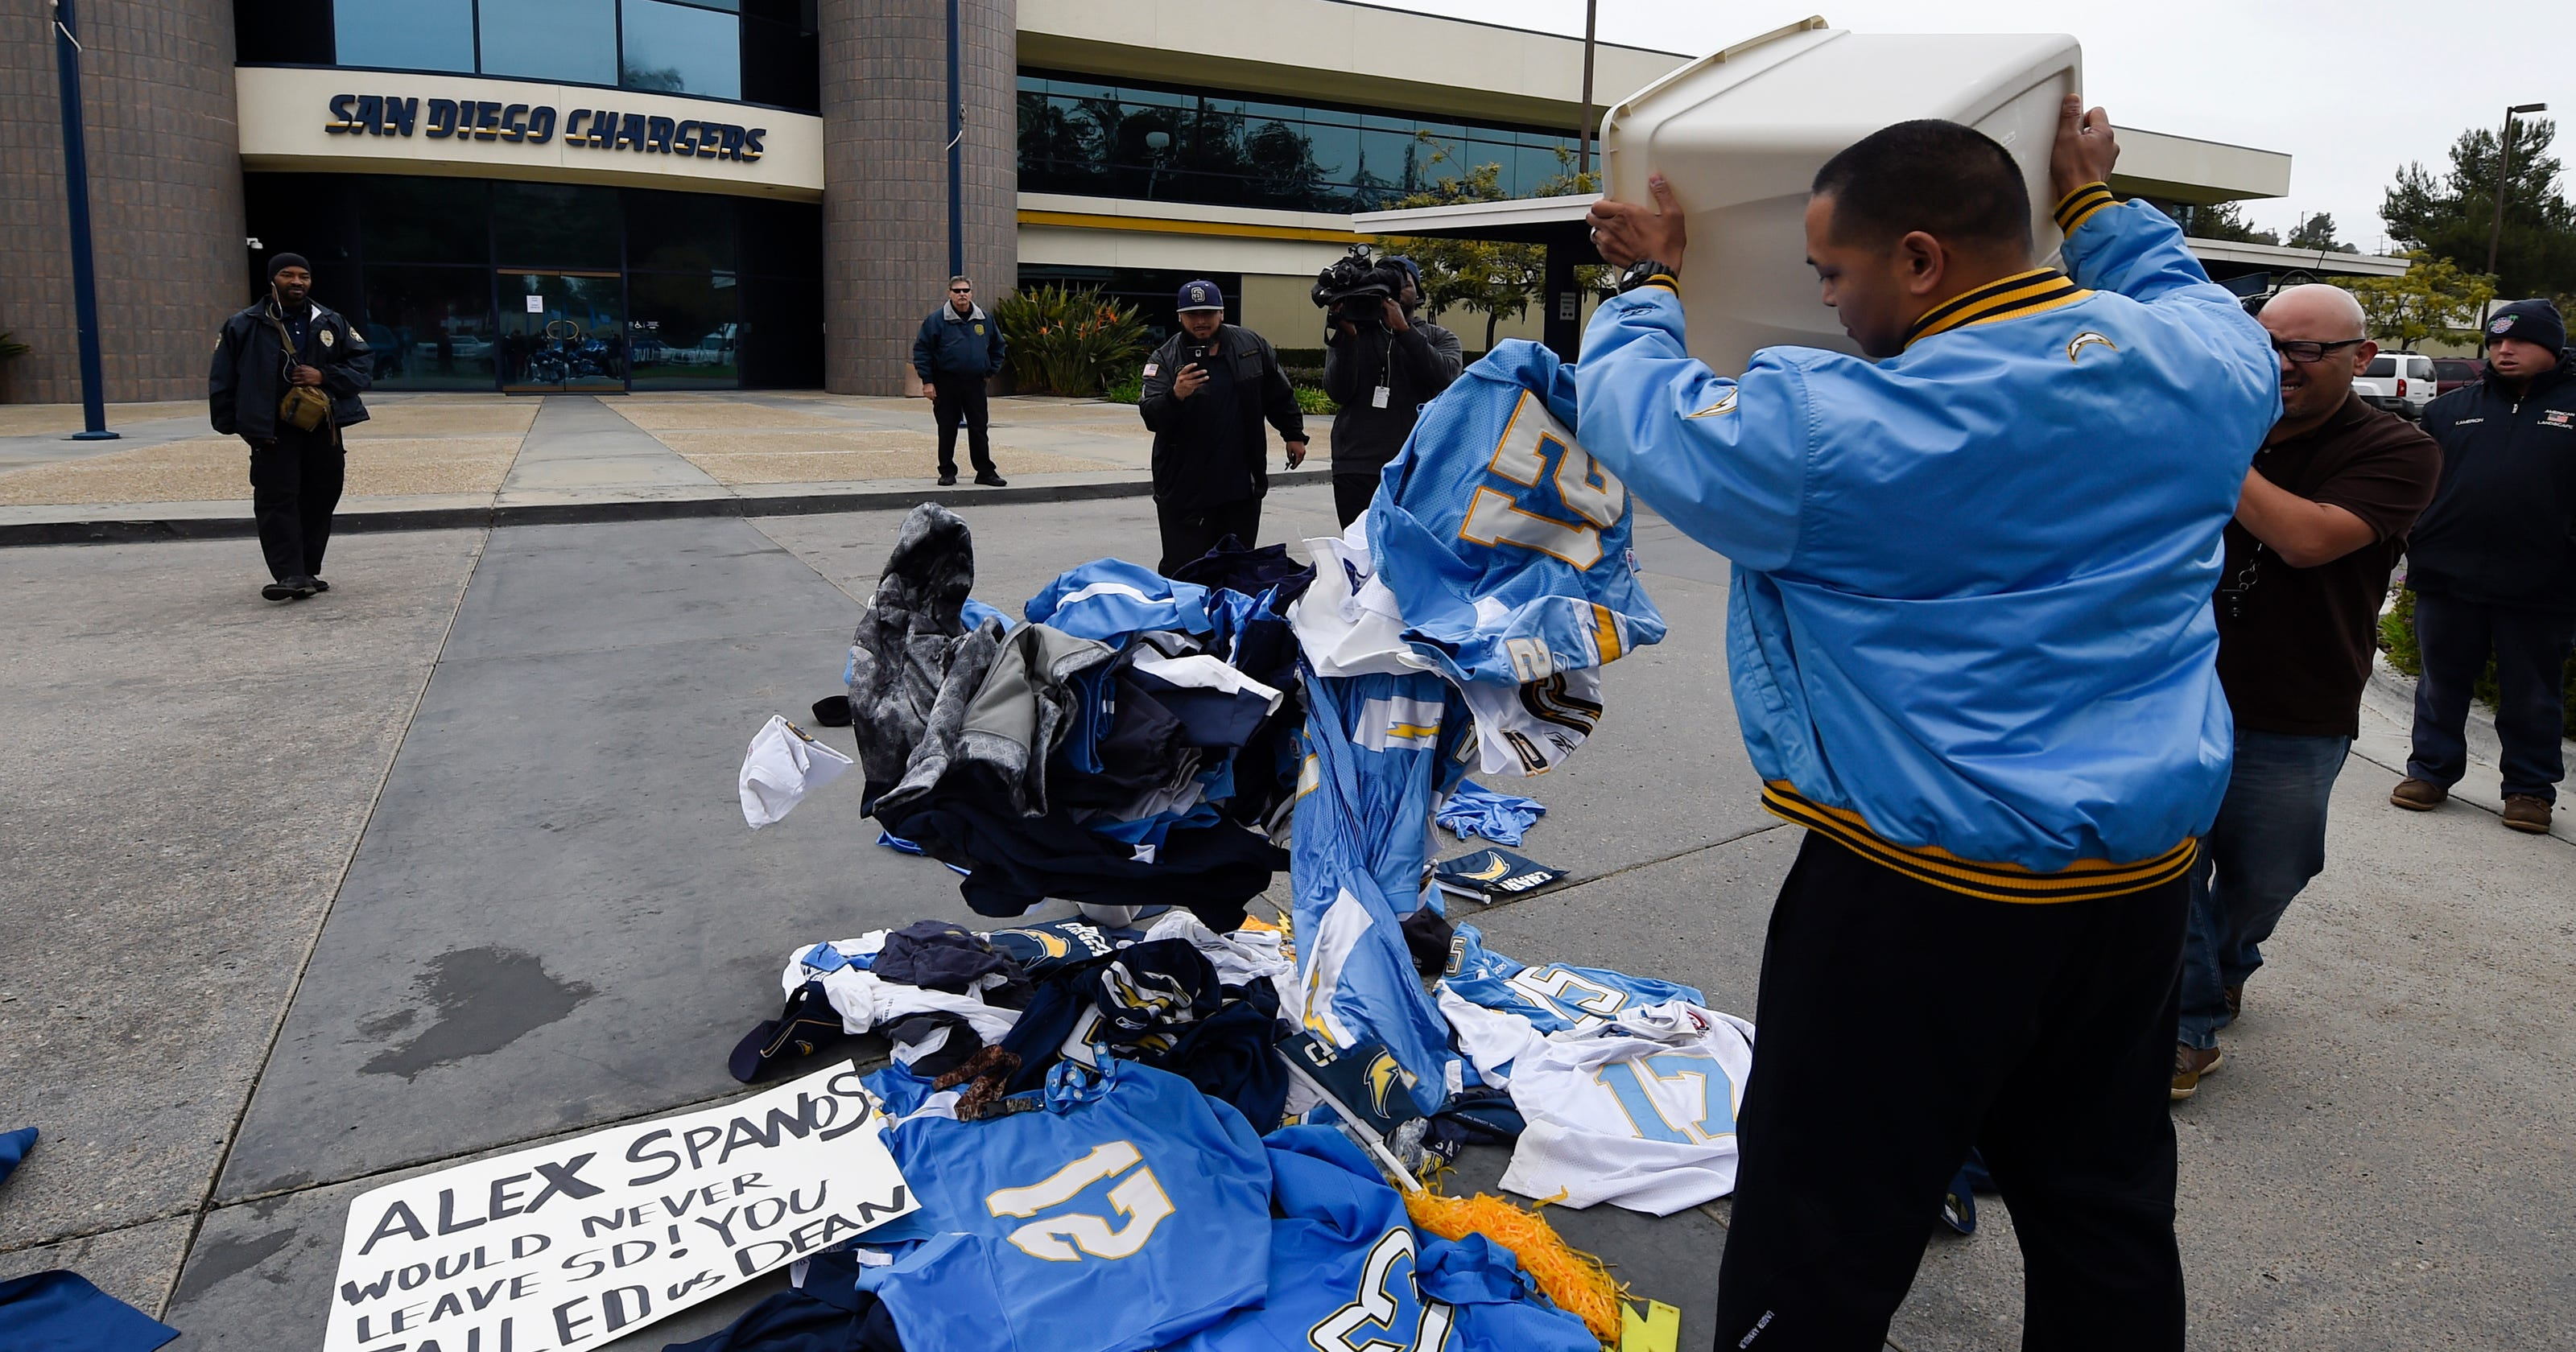 68d949887 San Diego Chargers are no more after leaving for Los Angeles